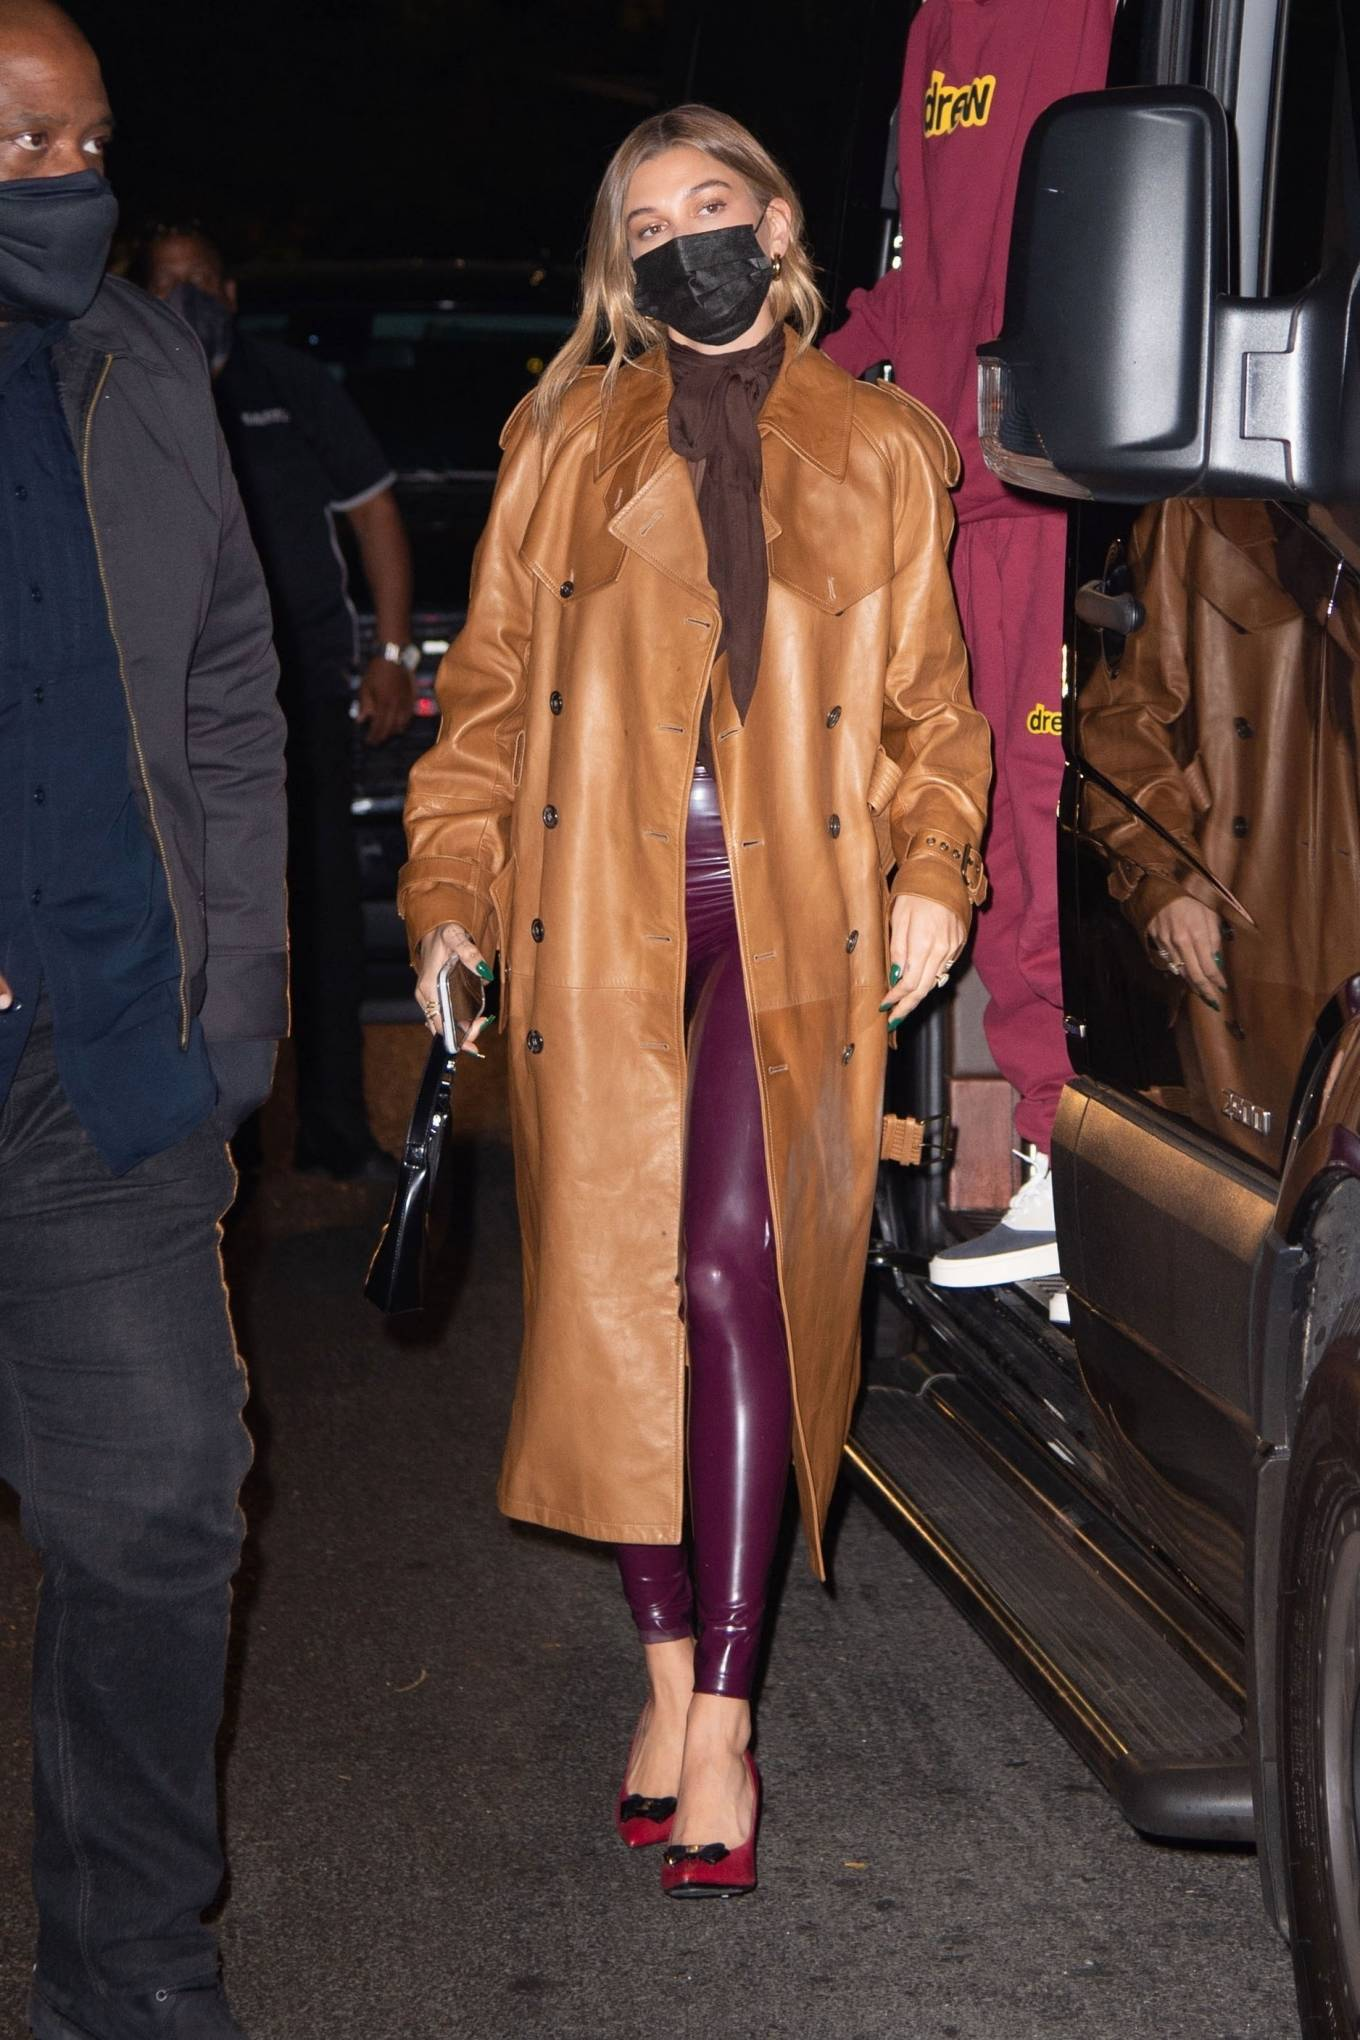 Hailey Baldwin wearing a oversized tan ankle length leather trench coat with extra long sleeves and notched lapel collar